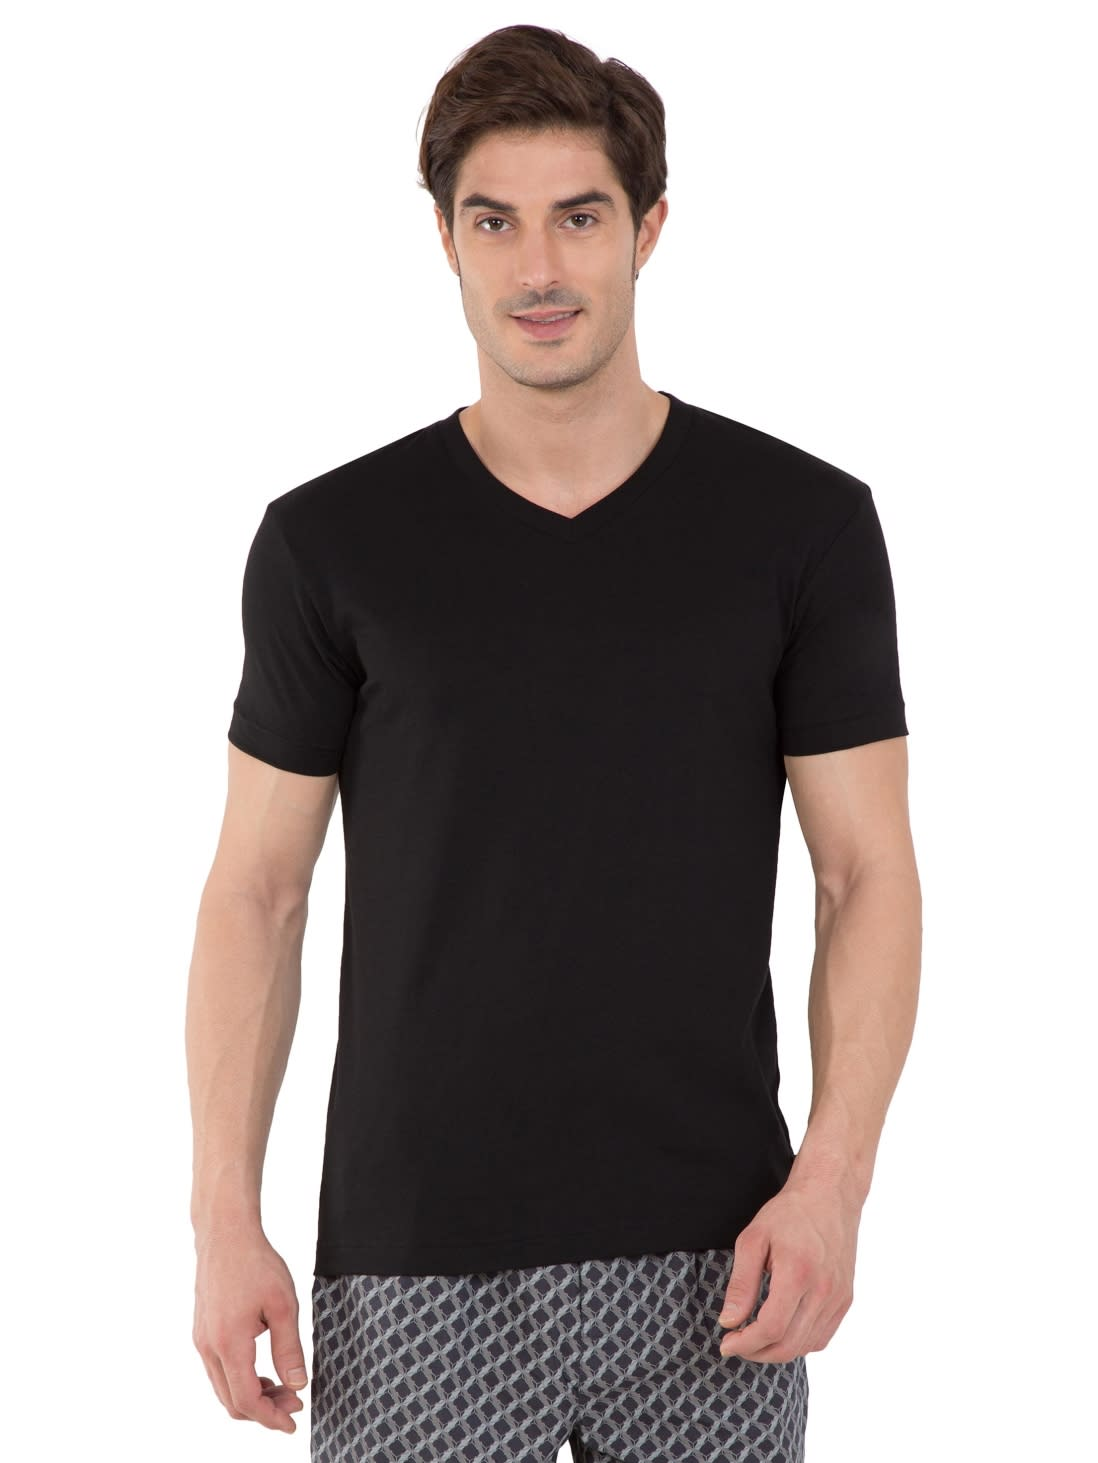 timeless design df2c7 2a0ba T-Shirts for Men | Buy Men T-Shirts Online from Jockey